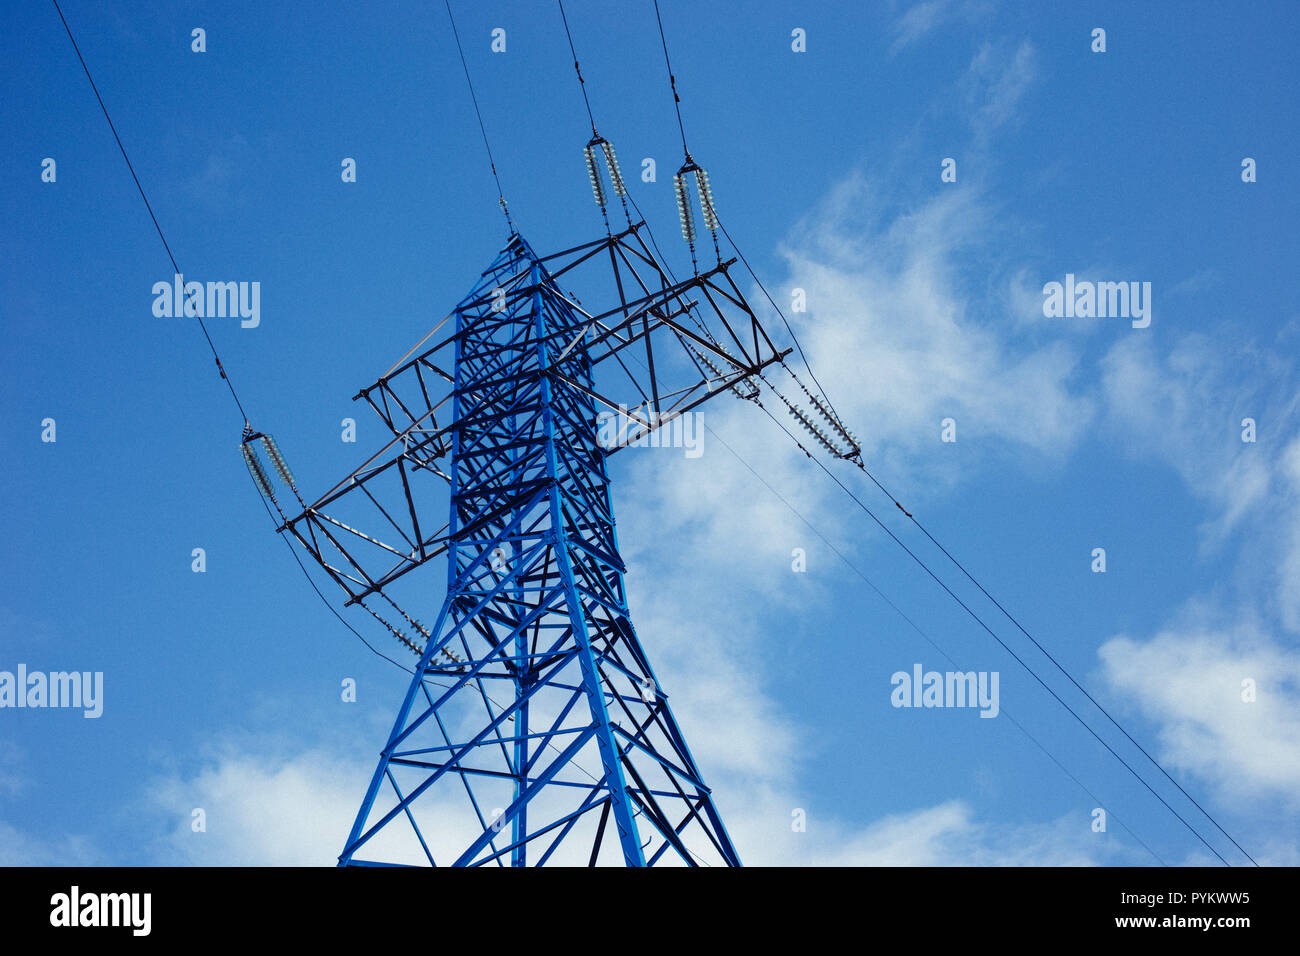 bottom view of the tower of power grids on blue sky background, High voltage, Electricity concept - Stock Image